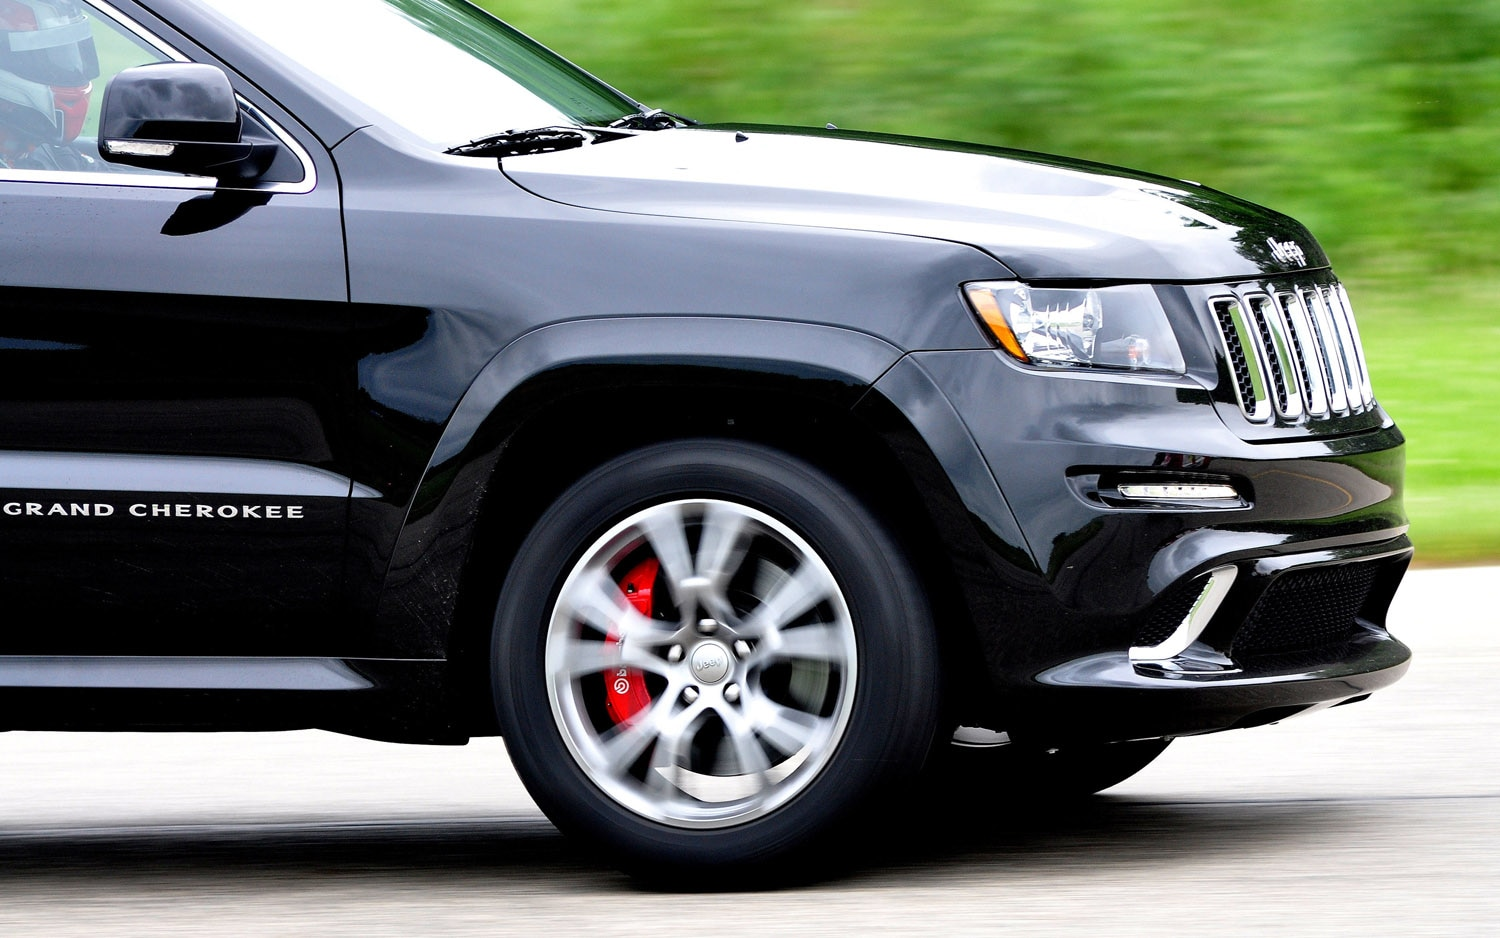 feature flick jeep grand cherokee srt8 laps the nurburgring in 8 49. Black Bedroom Furniture Sets. Home Design Ideas